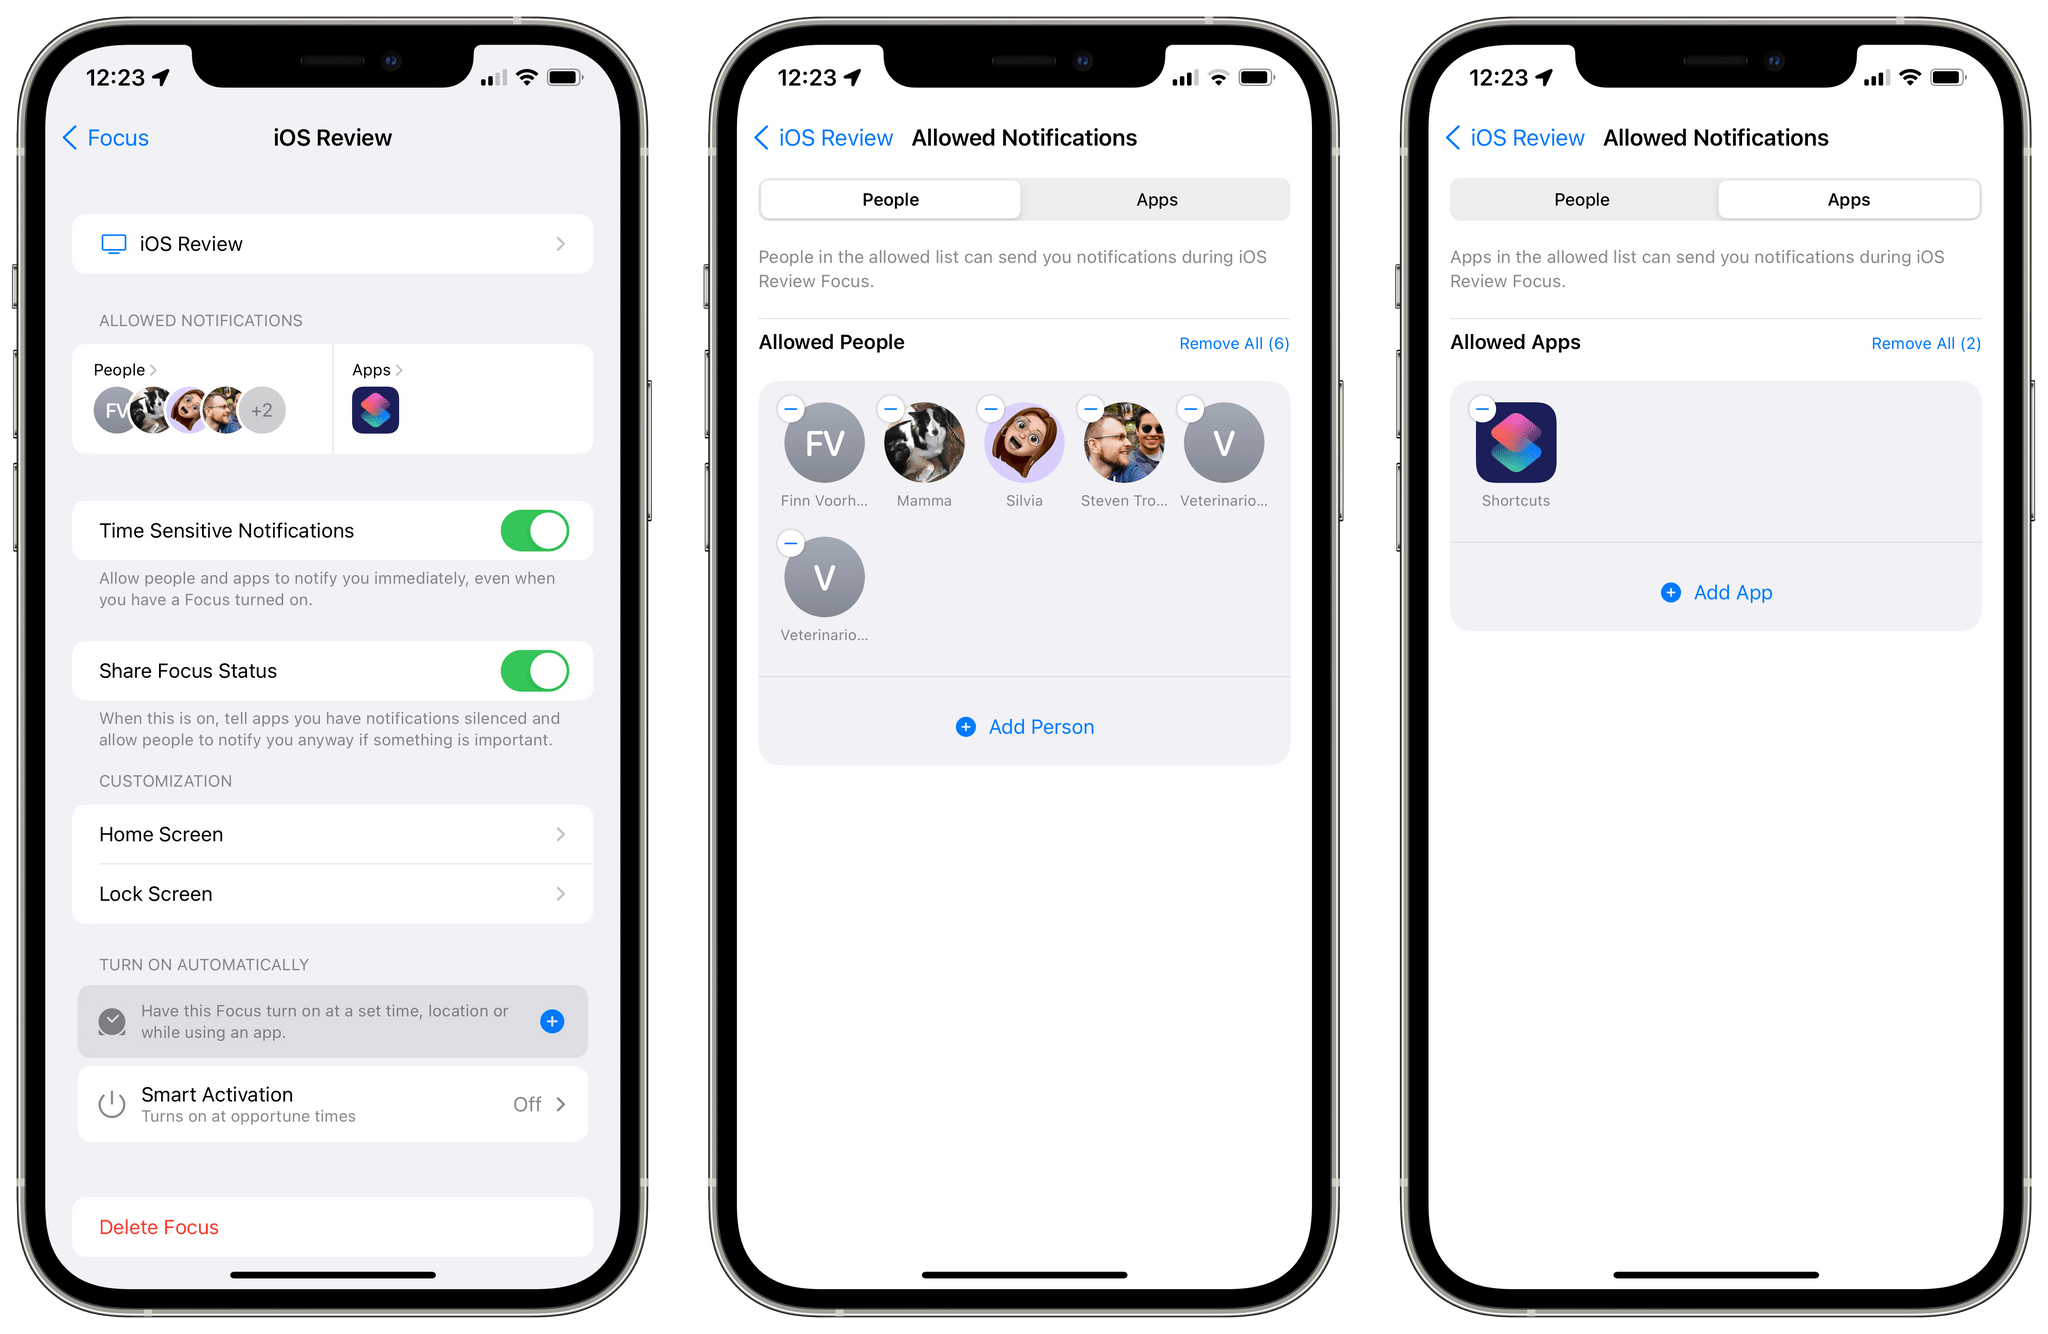 Configuring notifications from apps and people in iOS 15's Focus.